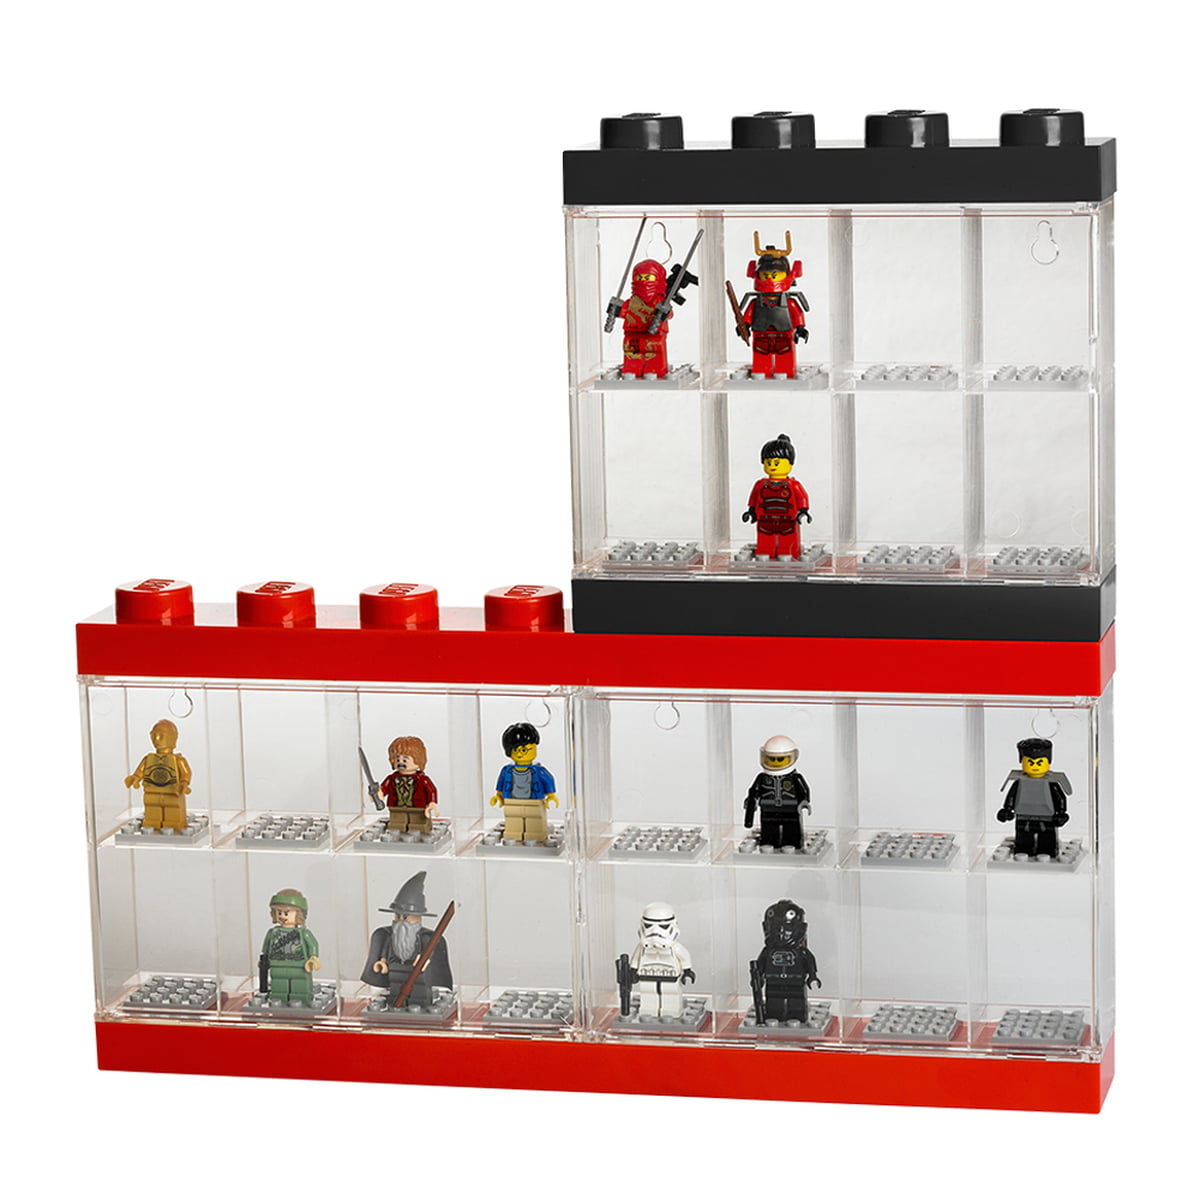 lego bo te de rangement et pr sentoir pour figurines. Black Bedroom Furniture Sets. Home Design Ideas